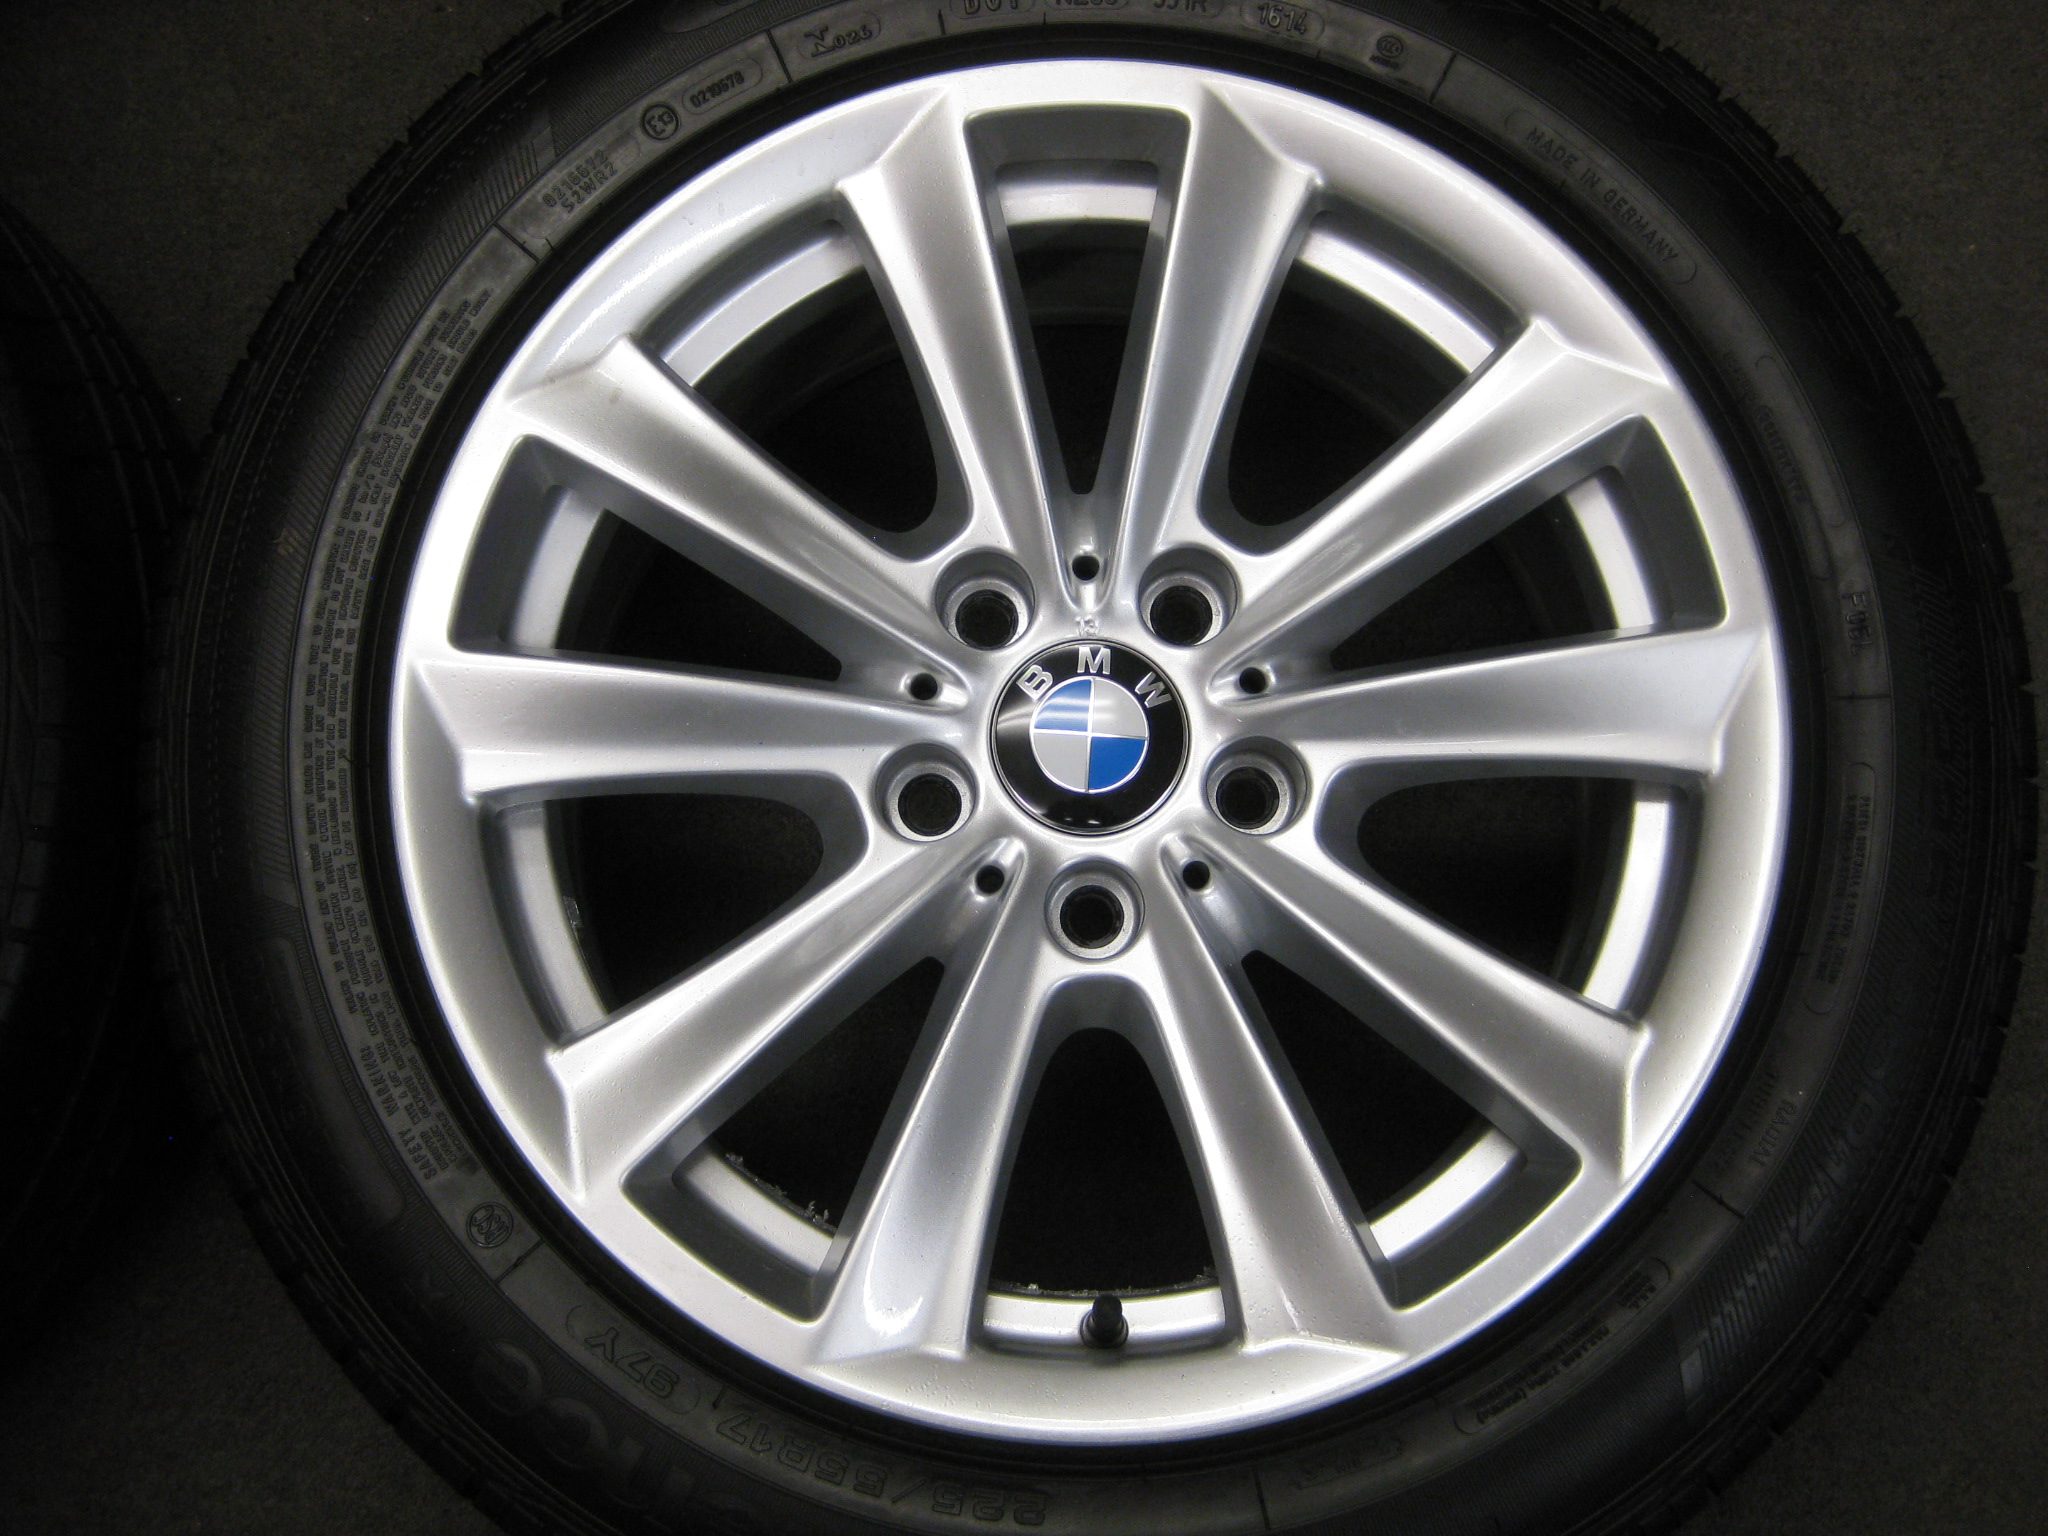 "USED 17"" GENUINE STYLE 236 F10/11 V SPOKE ALLOYS,VGC INC GOOD RUNFLATS TYRES"